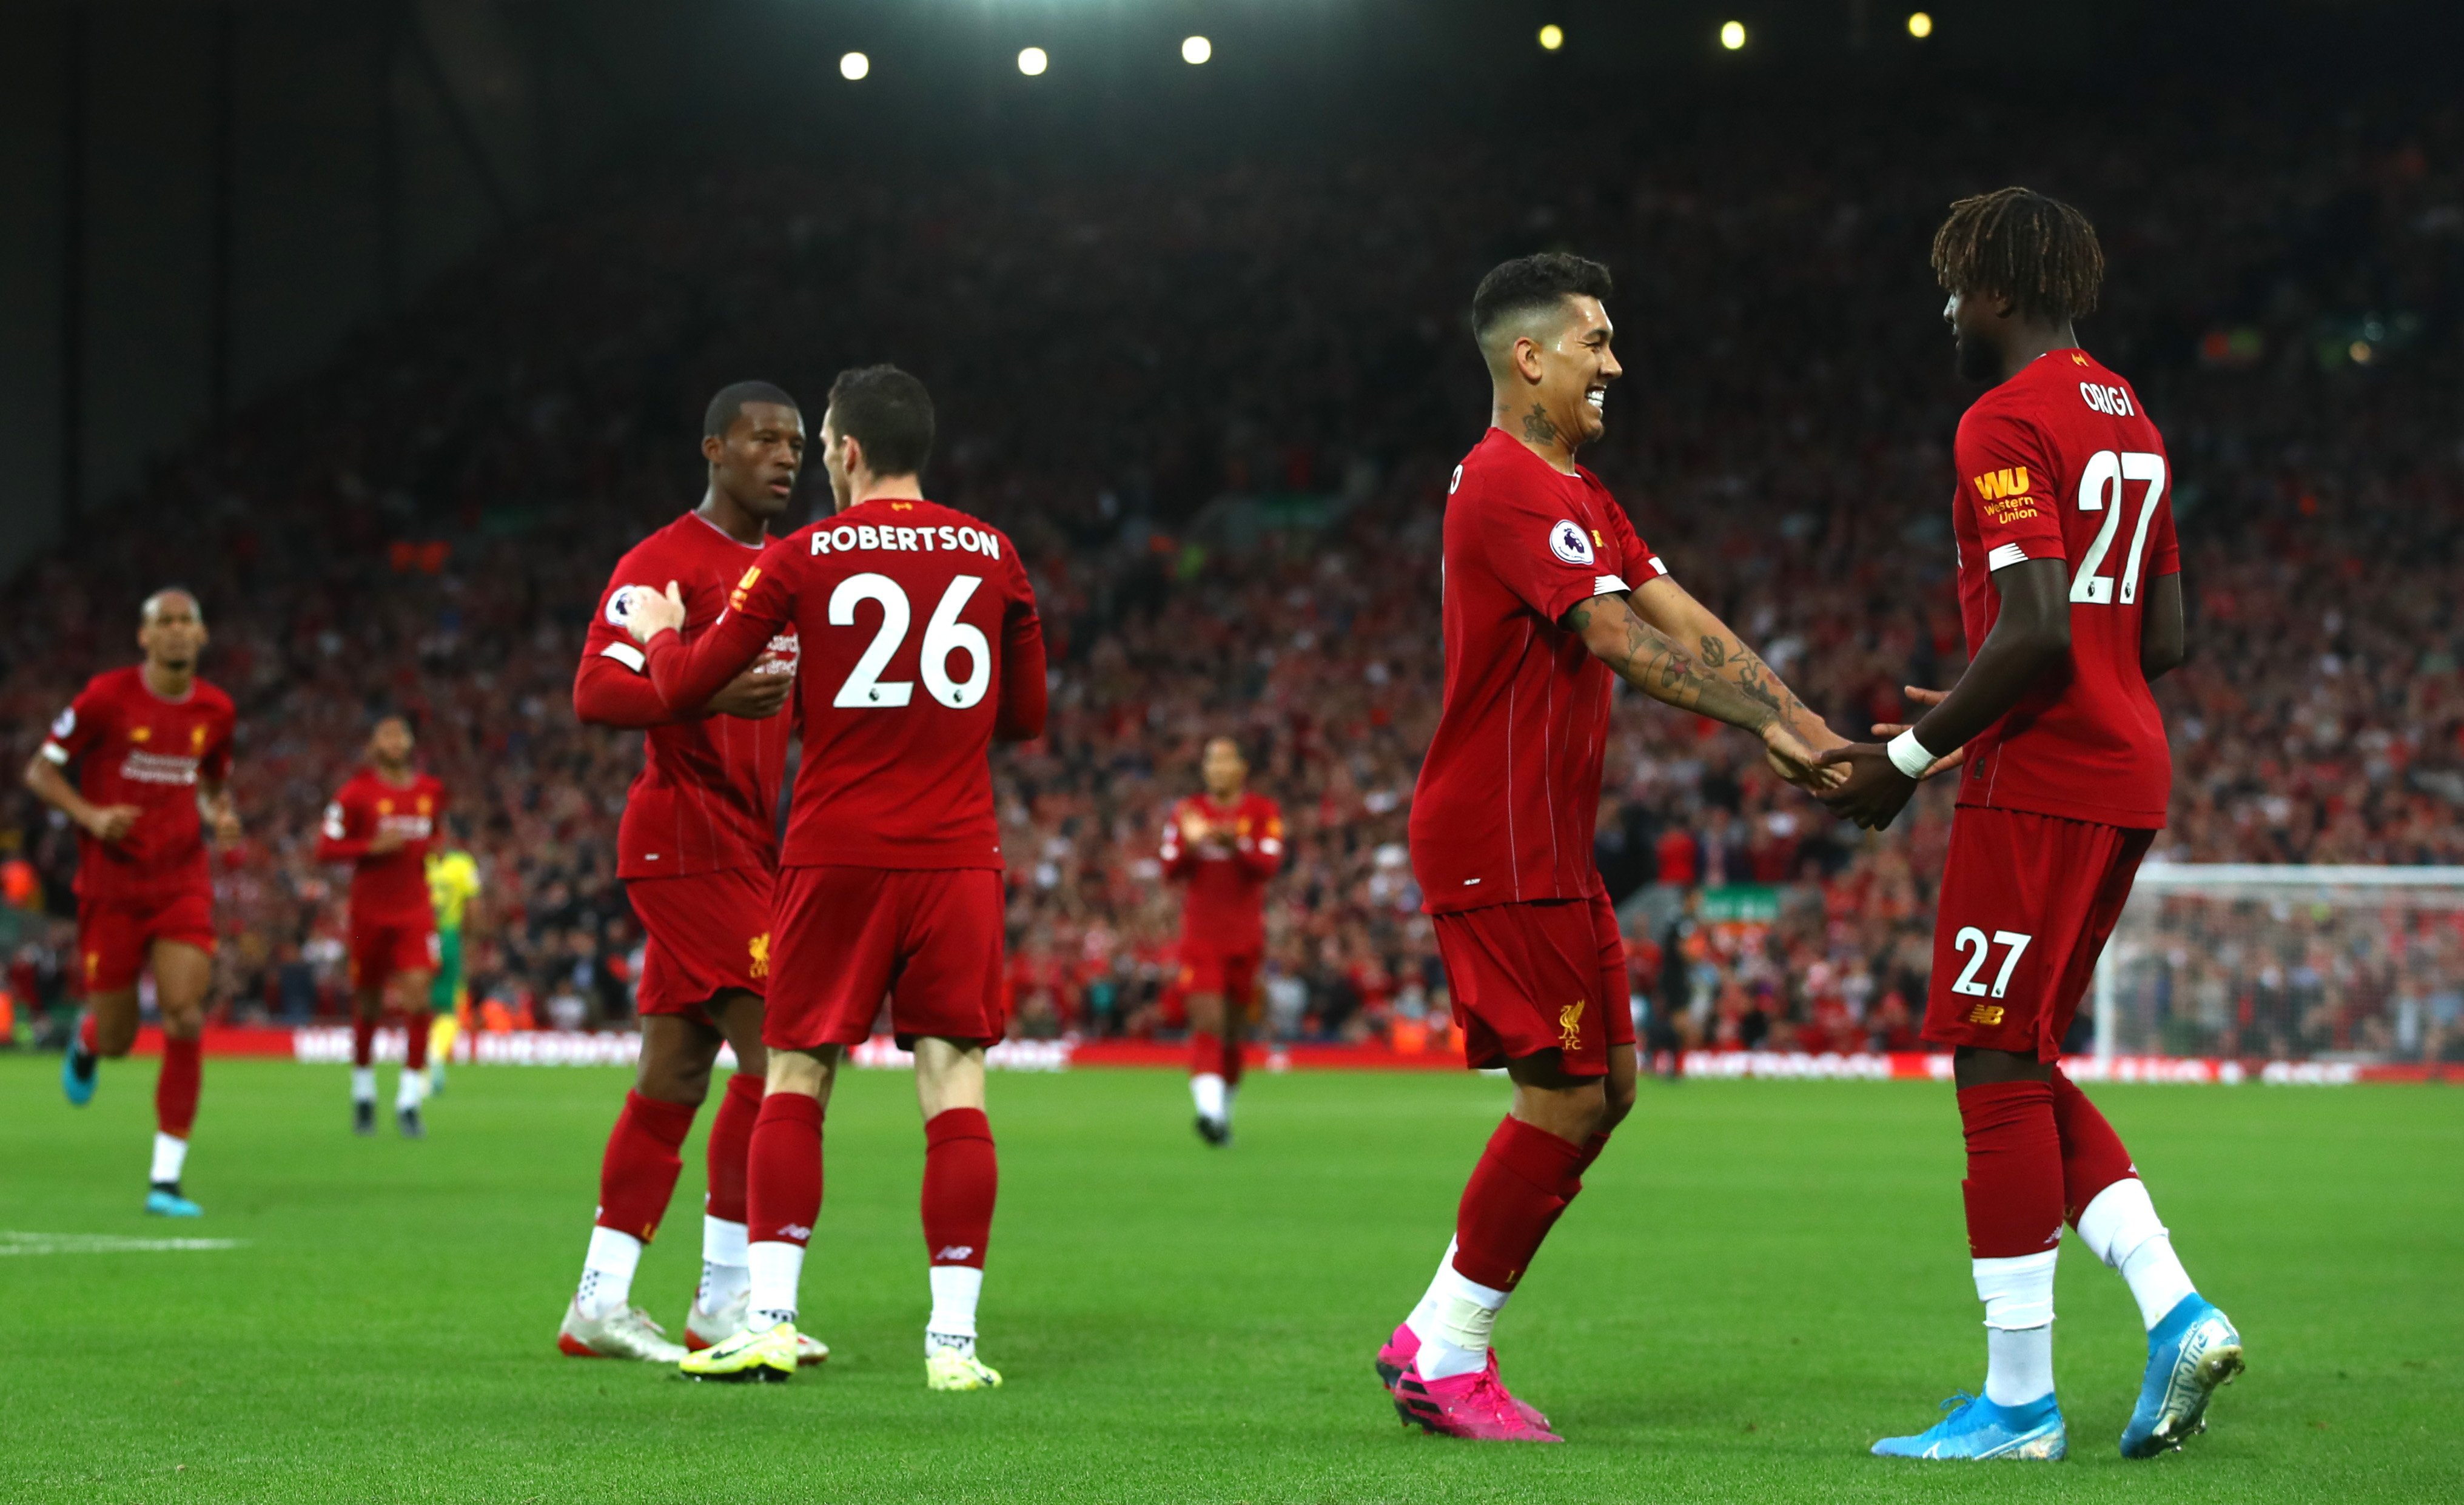 Liverpool Beat Norwich City At Anfield In Season Opener